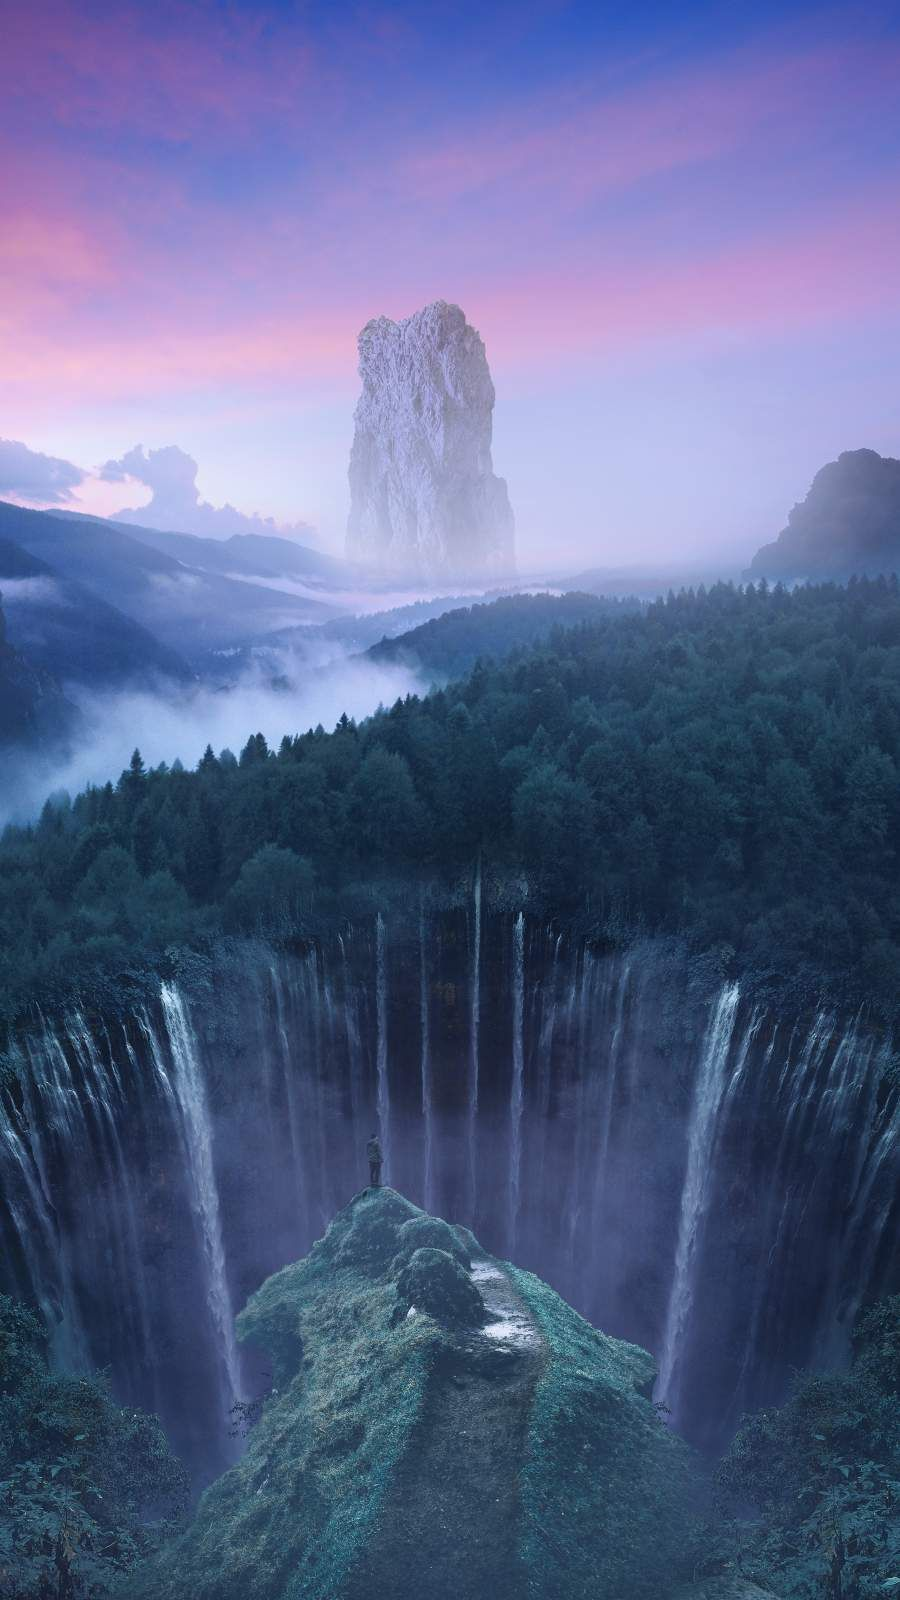 Download Fantasy World Iphone Wallpaper Top Free Awesome Backgrounds In 2020 Cool Wallpapers For Phones Ocean Wallpaper Nature Wallpaper